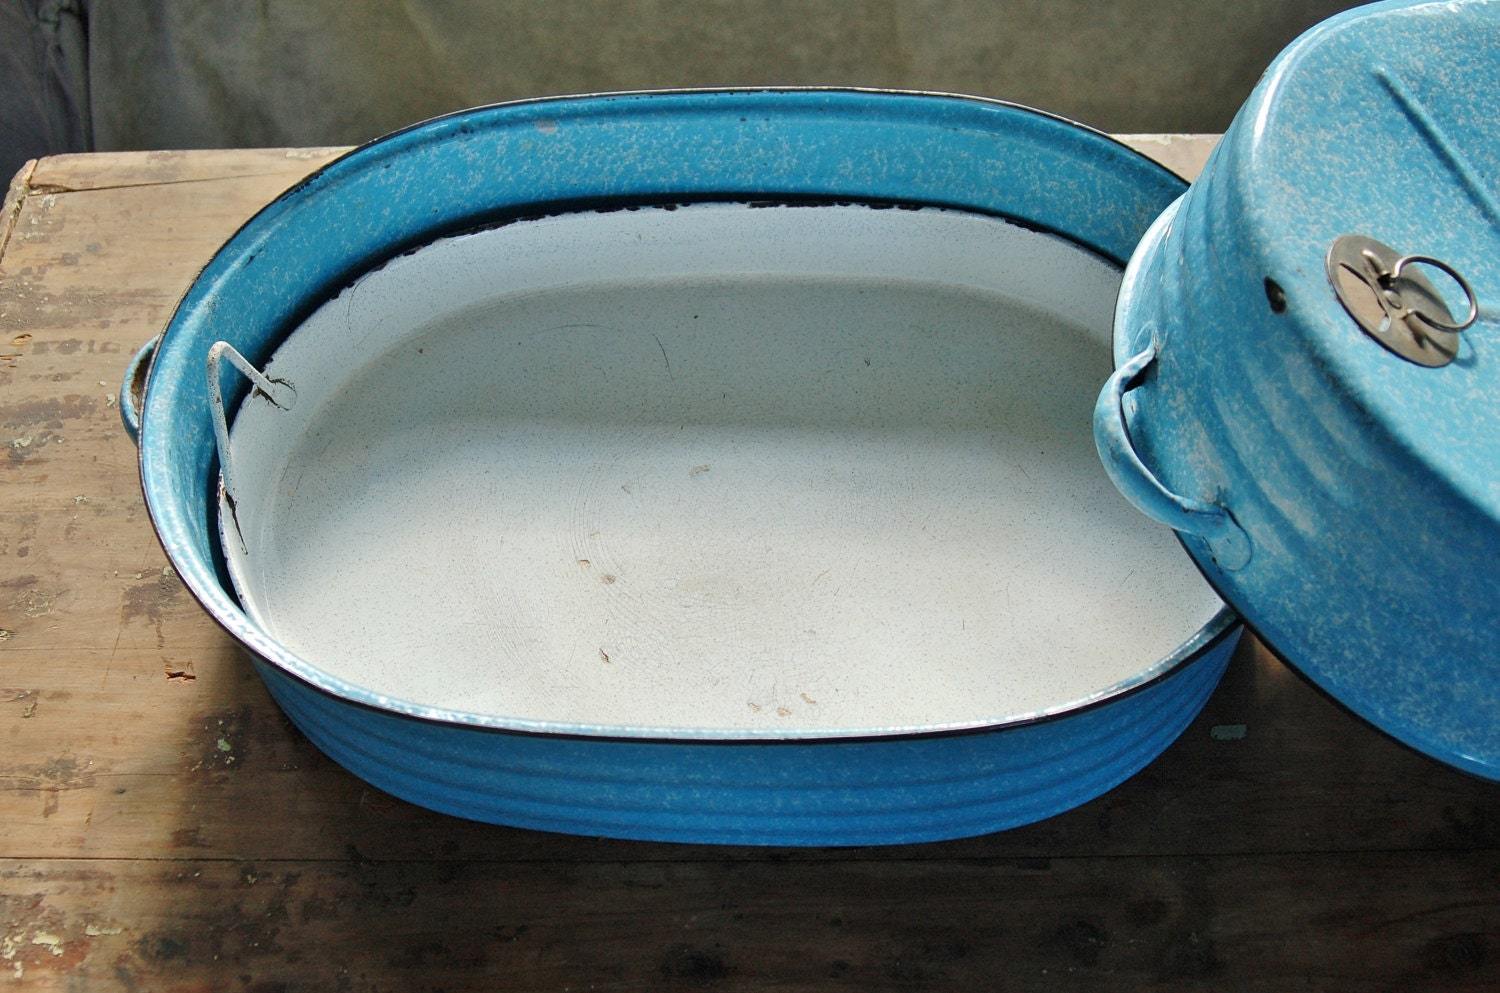 Reserved Blue Enamelware Roasting Pan With Insert Tray Reed